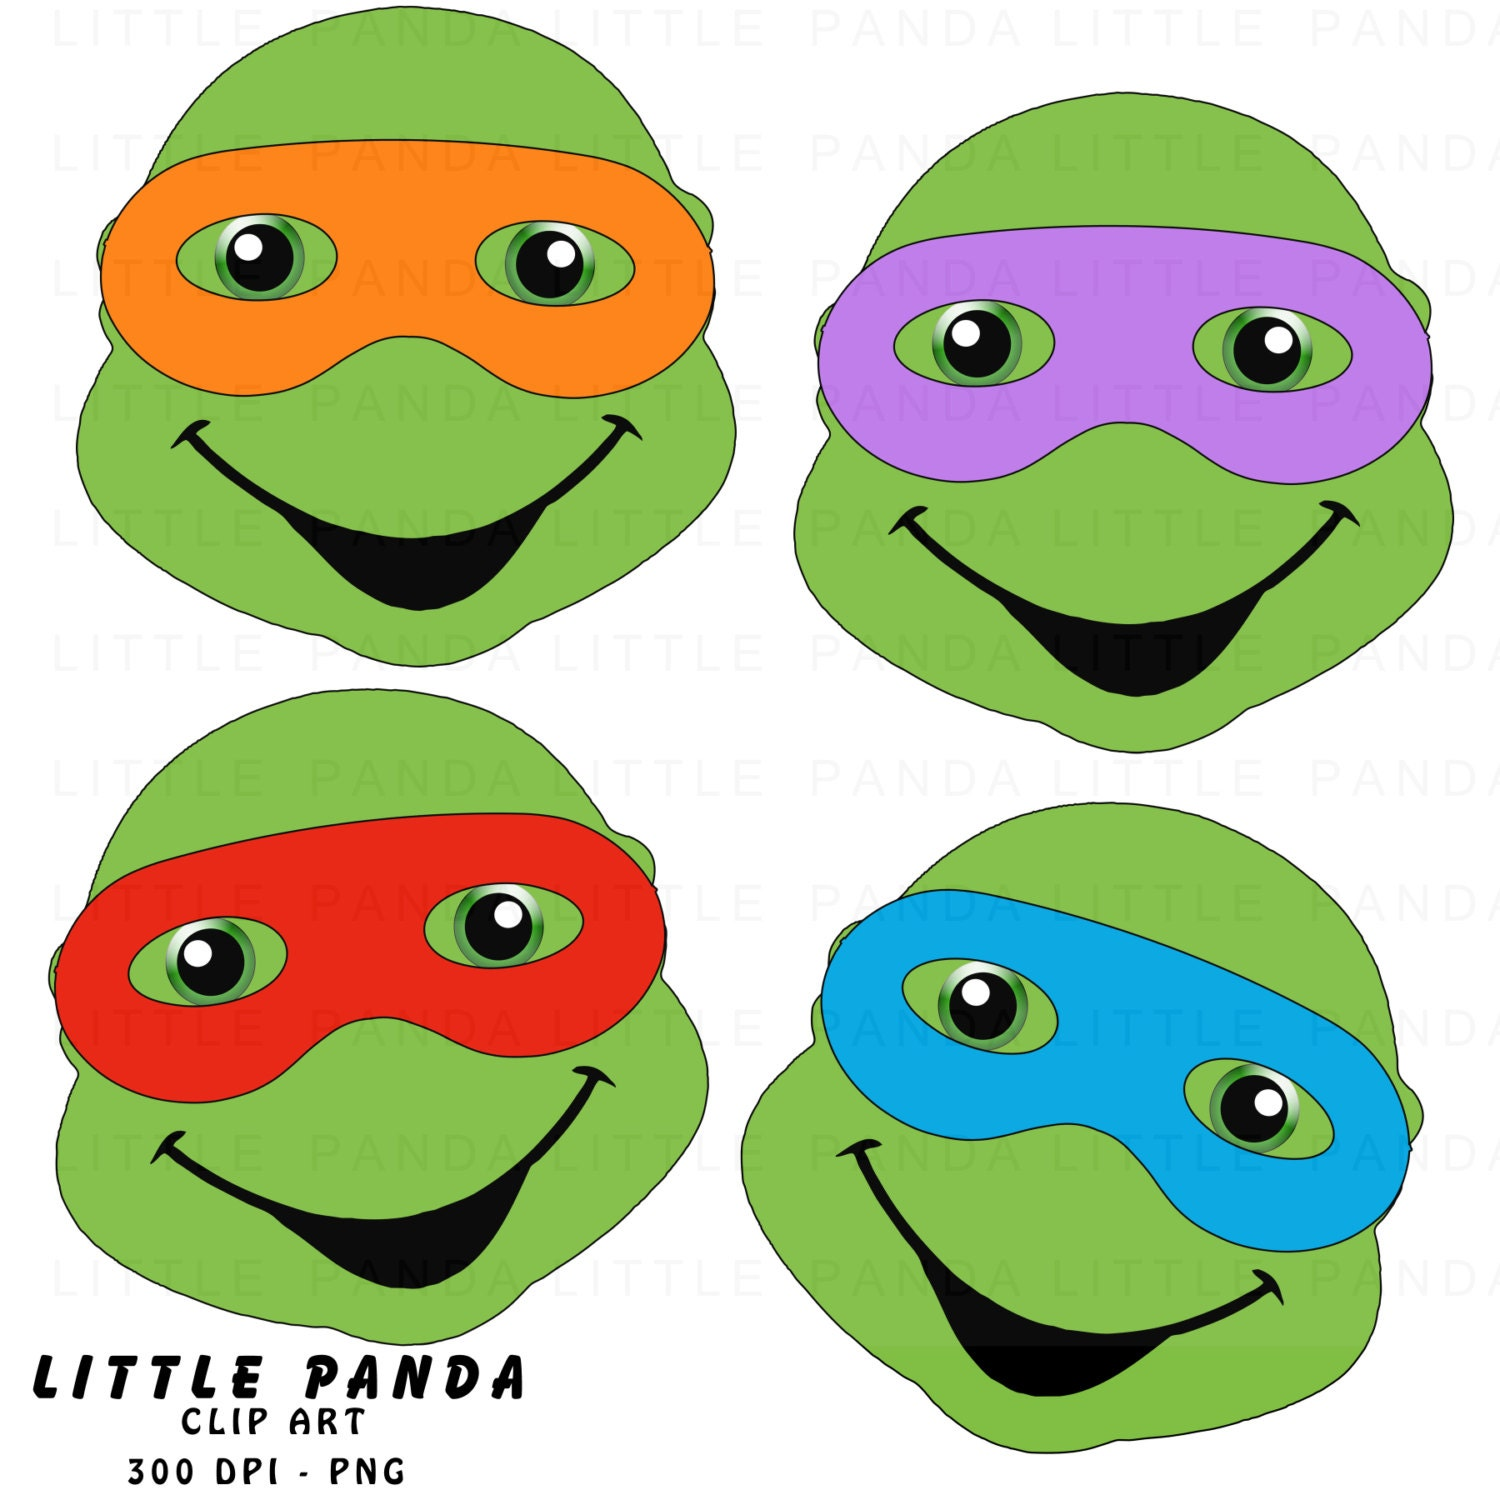 ninja turtle clip art free - photo #32